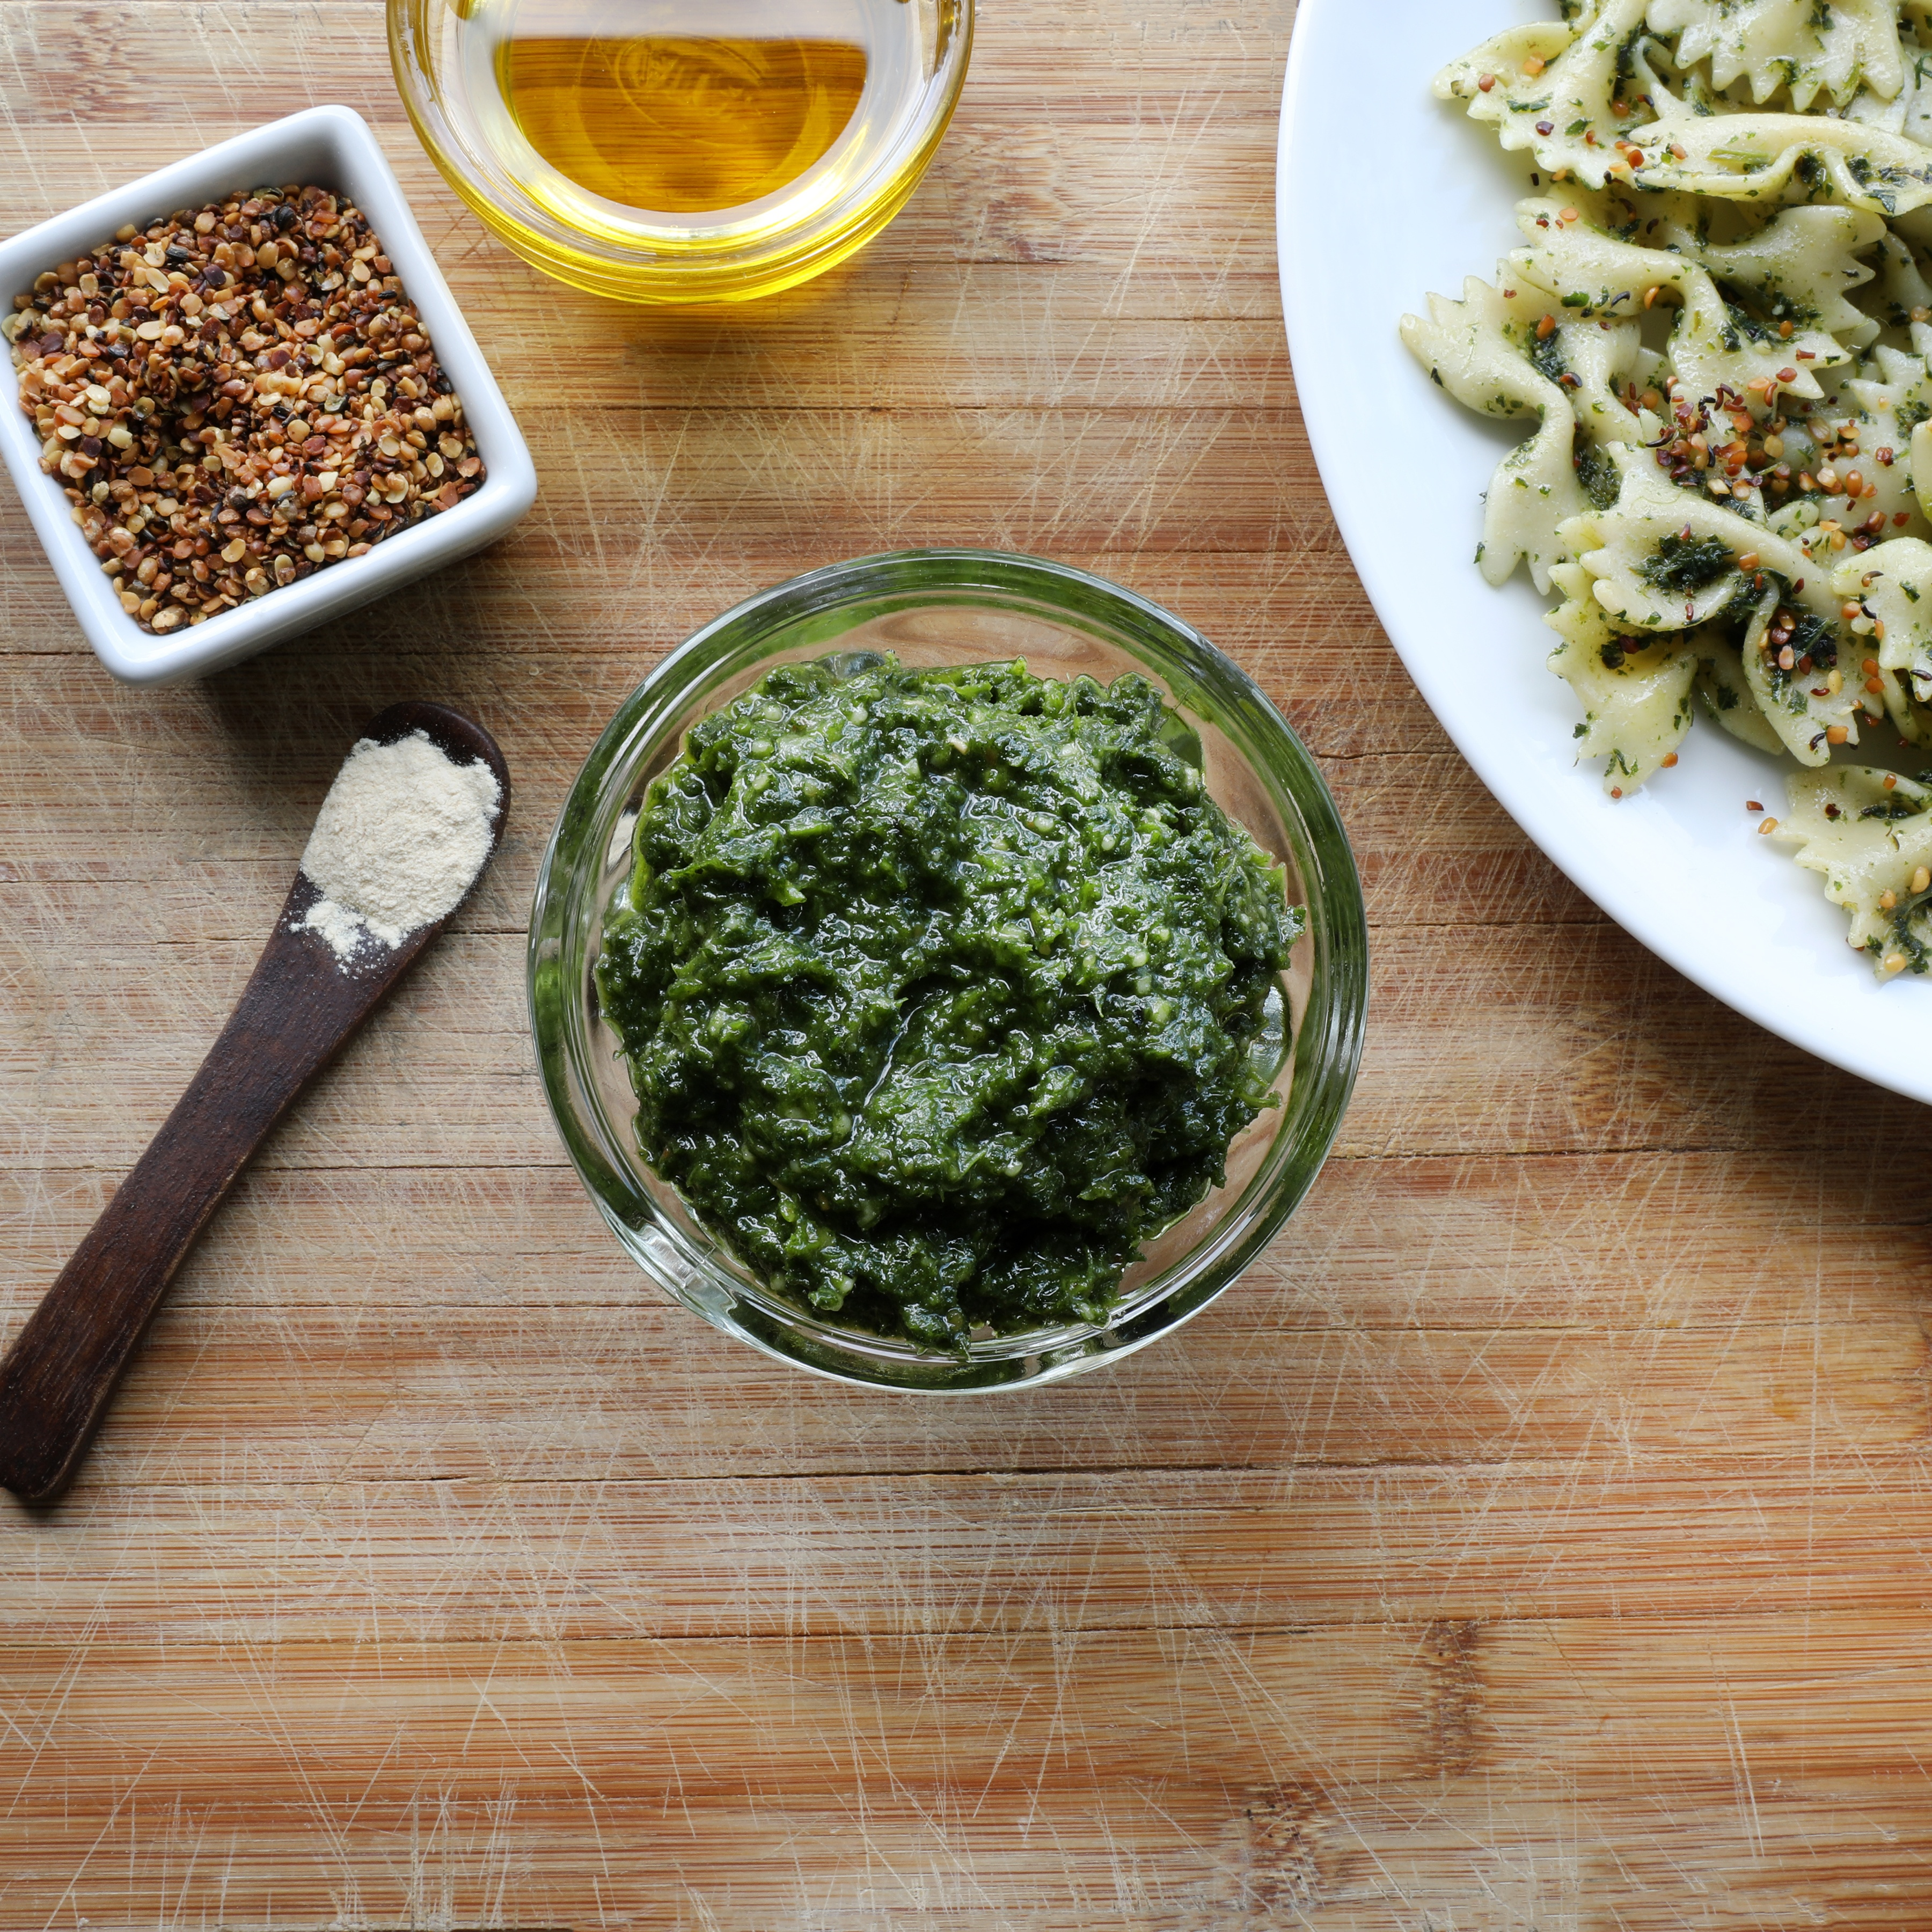 Nettle pesto in glass bowl near pasta and spoon with garlic powder, red pepper flakes, and olive oil